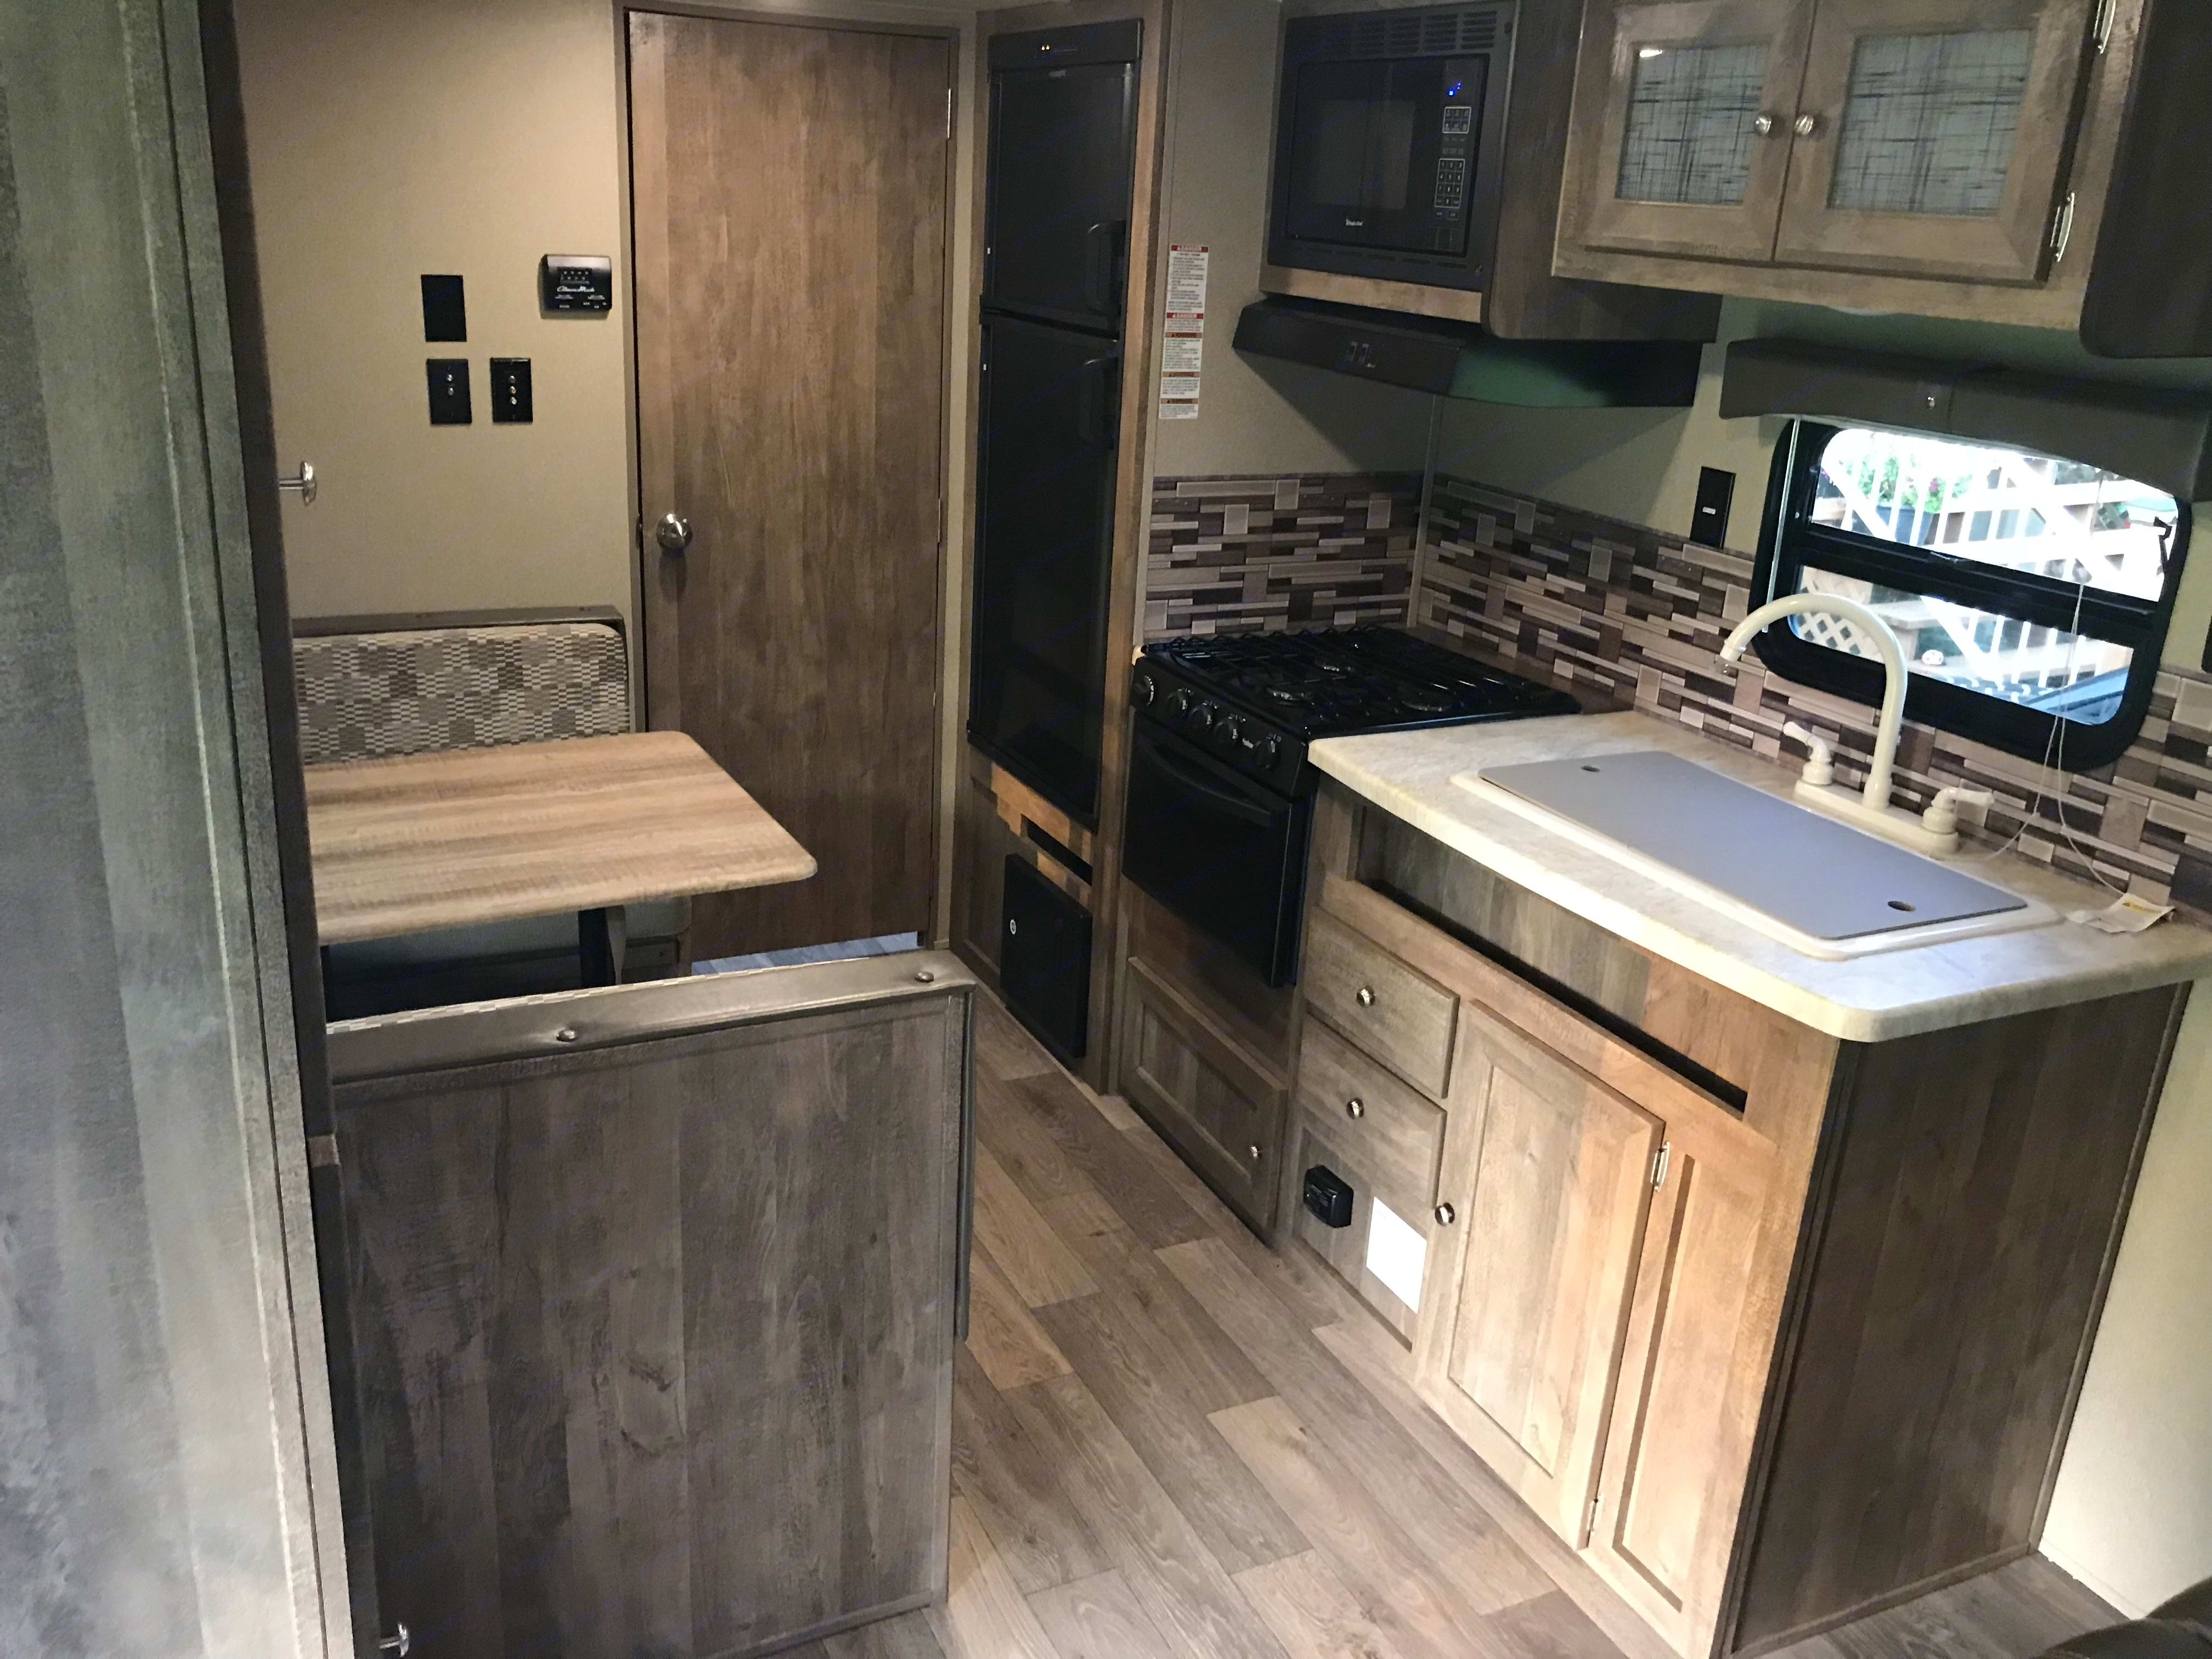 Enjoy a full kitchen Fridge and freezer, microwave, 3 burner range, oven, double sink, table seats 4-6 people. Table folds down to a double bed.. Forest River Puma 2018